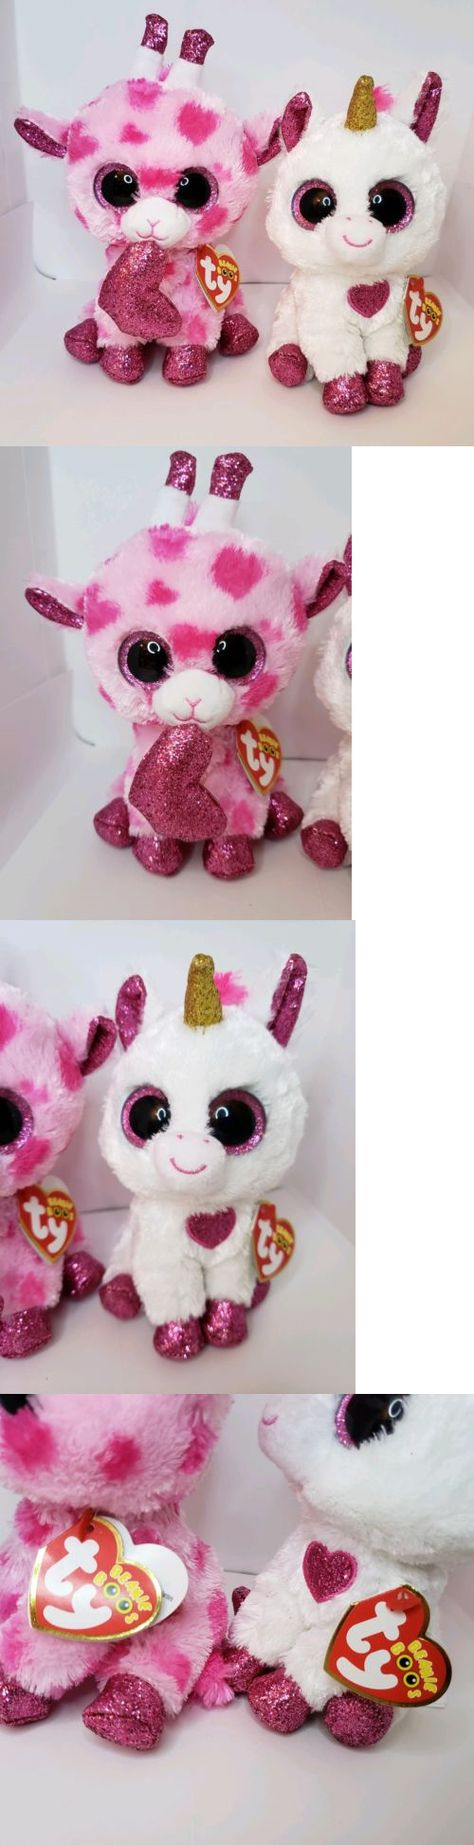 6bee9111465 Other Ty Beanbag Plush 1037  Ty Beanie Boos 2018 2019 Valentine S Lot  Cherie Unicorn Sweetums Giraffe 6 Mwmt -  BUY IT NOW ONLY   20.95 on  eBay   other ...